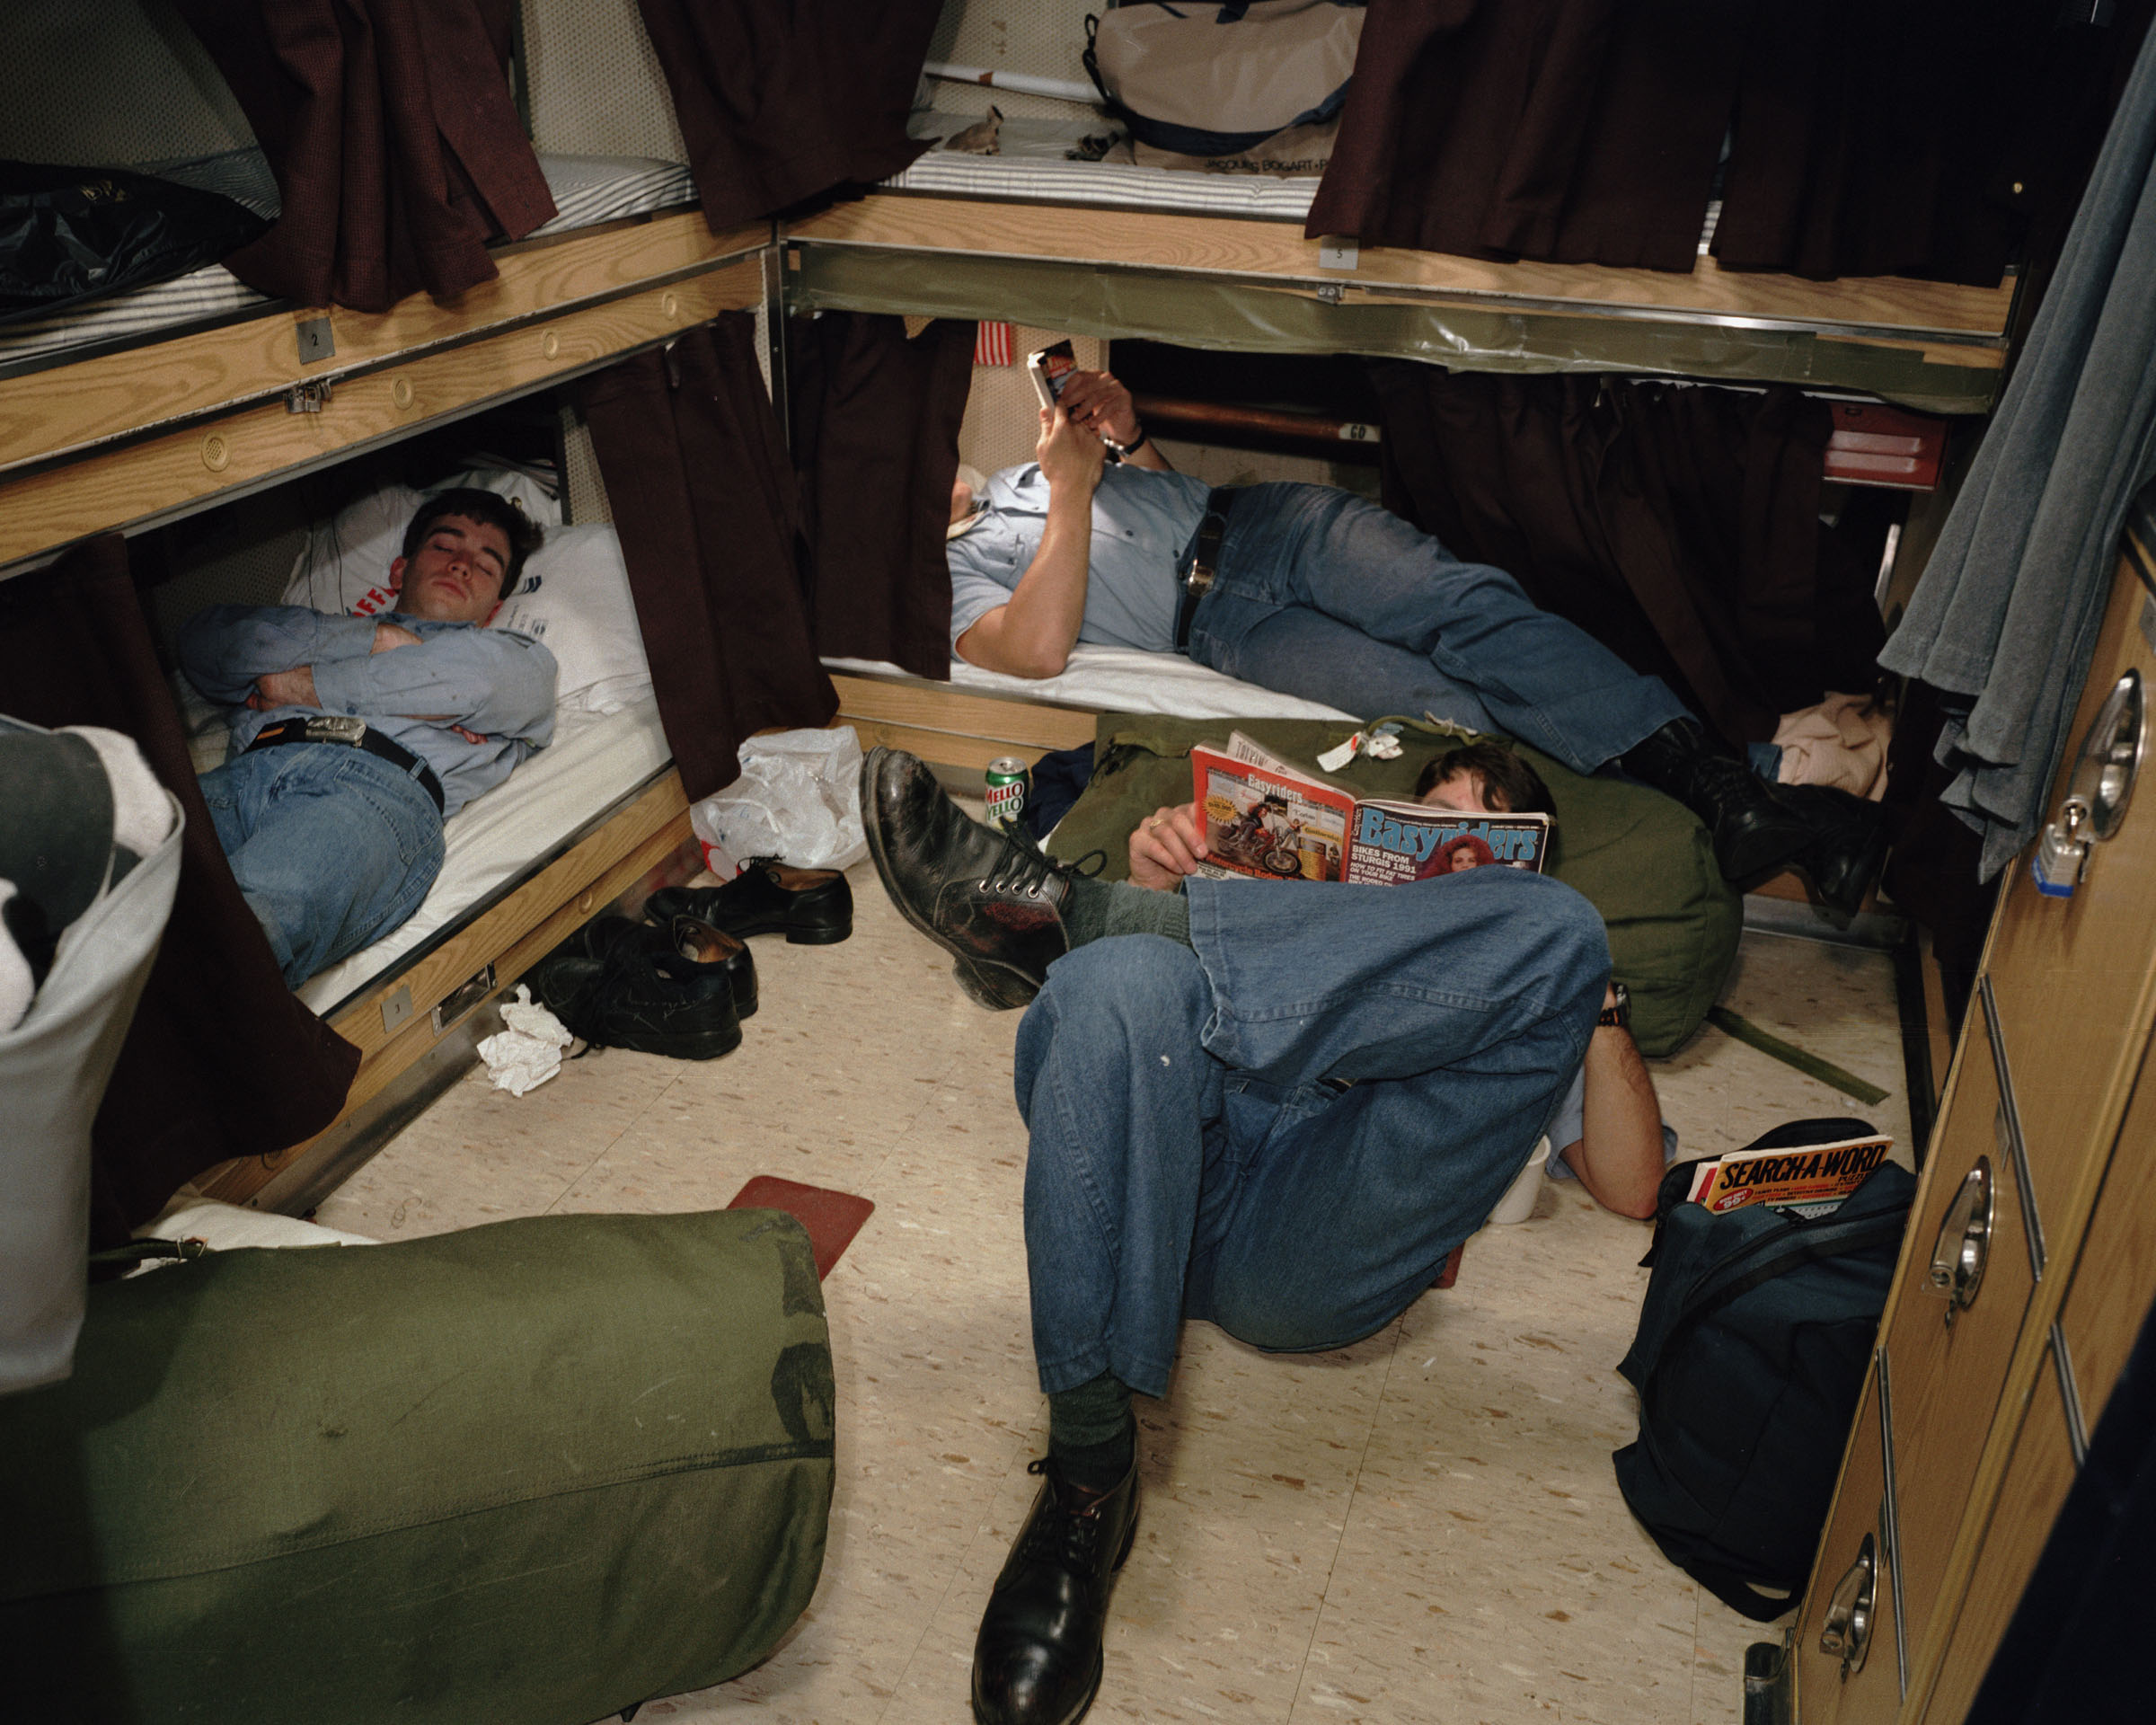 Enlisted crew quarters, USS Alaska, Naval Submarine Base Bangor, Washington, 1992.